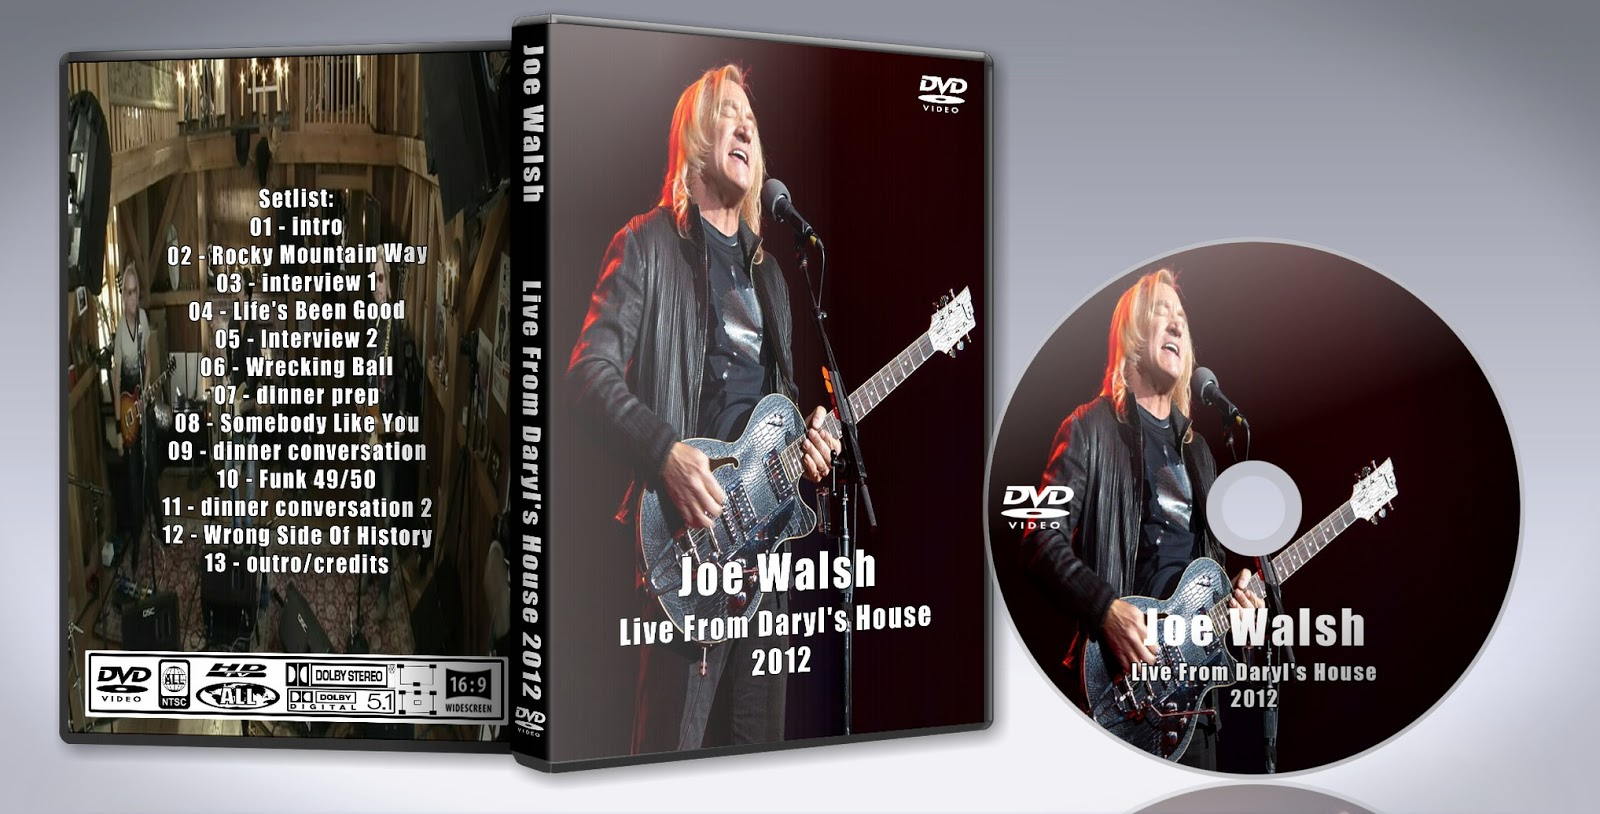 deer5001rockconcert: joe walsh - live from daryl's house 2012